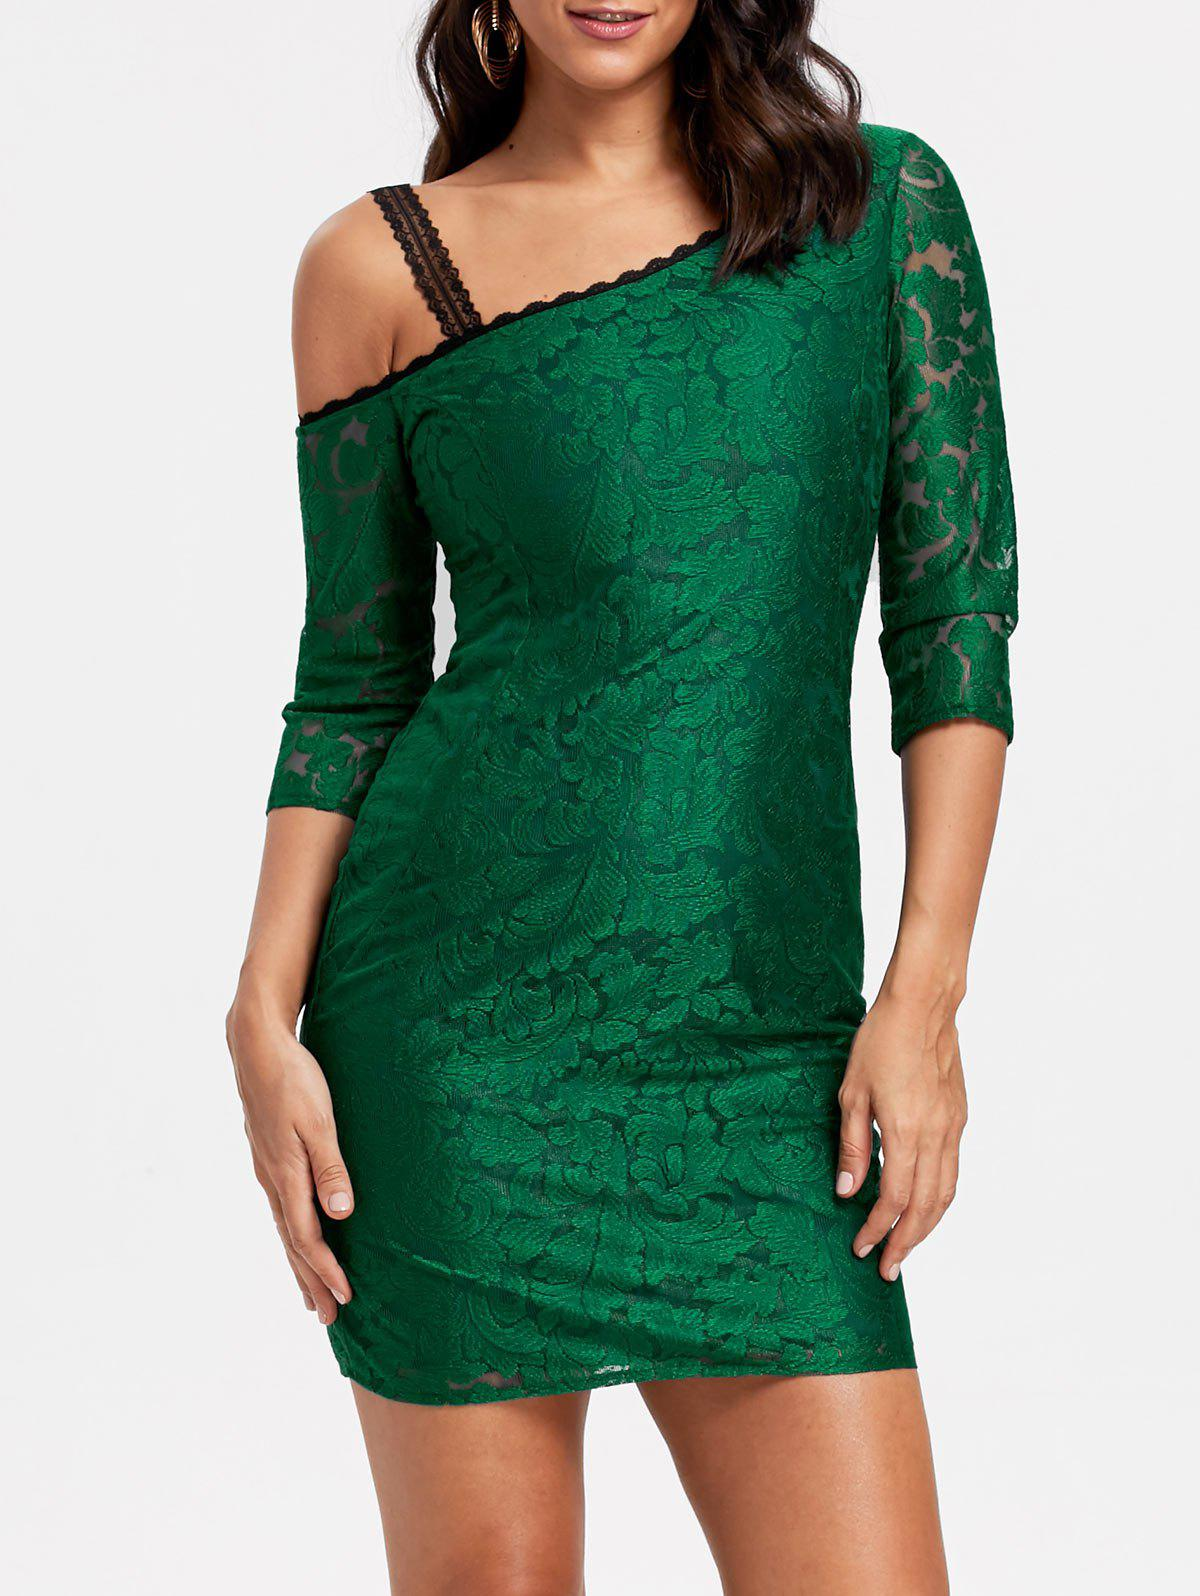 Floral Lace Skew Neck Bodycon Dress - GREEN XL